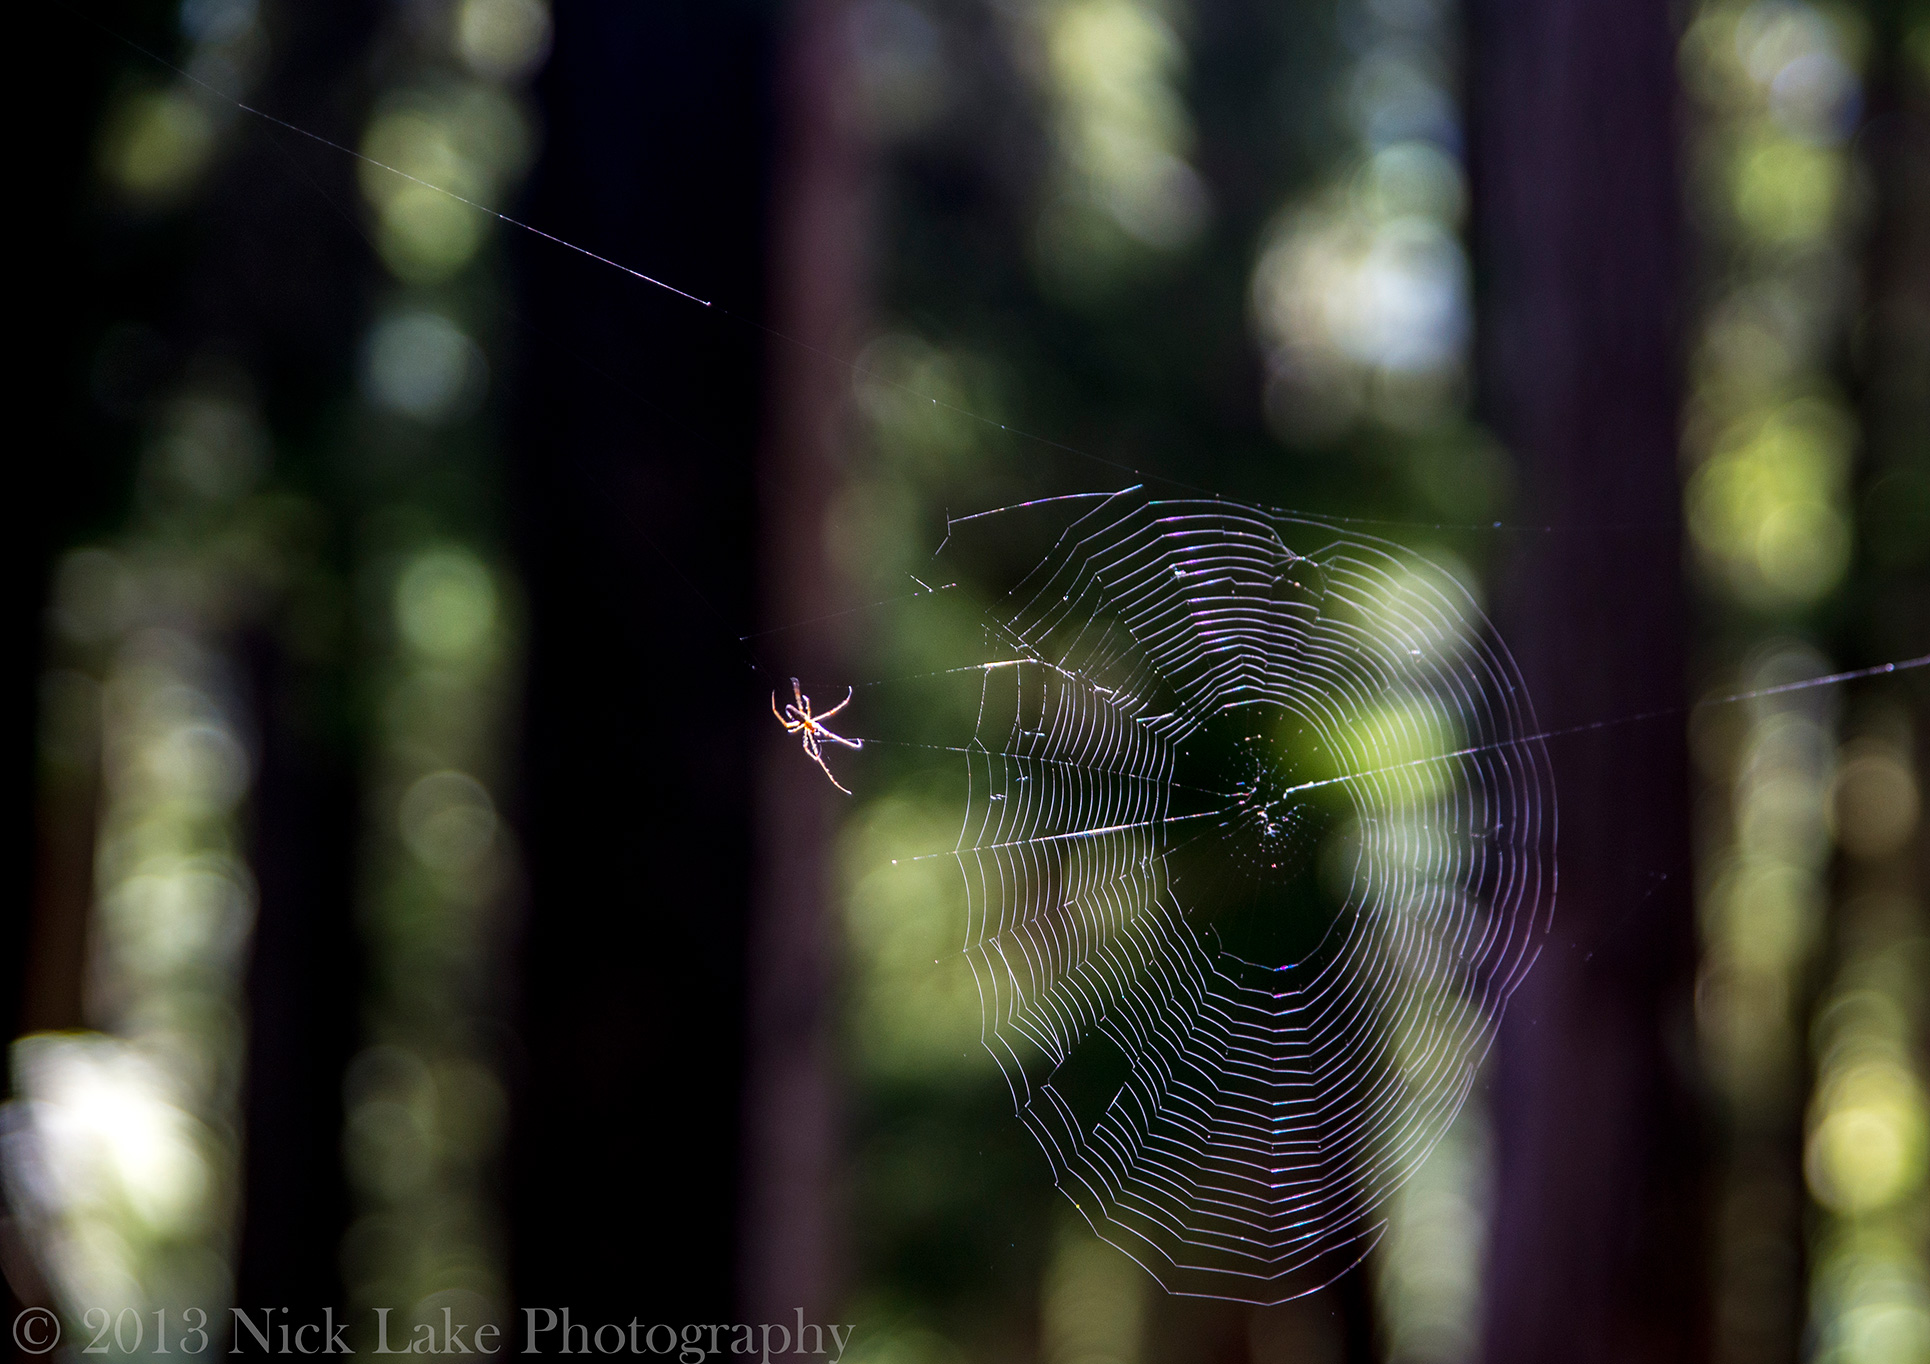 A spider perfects his web, hoping for a morning meal